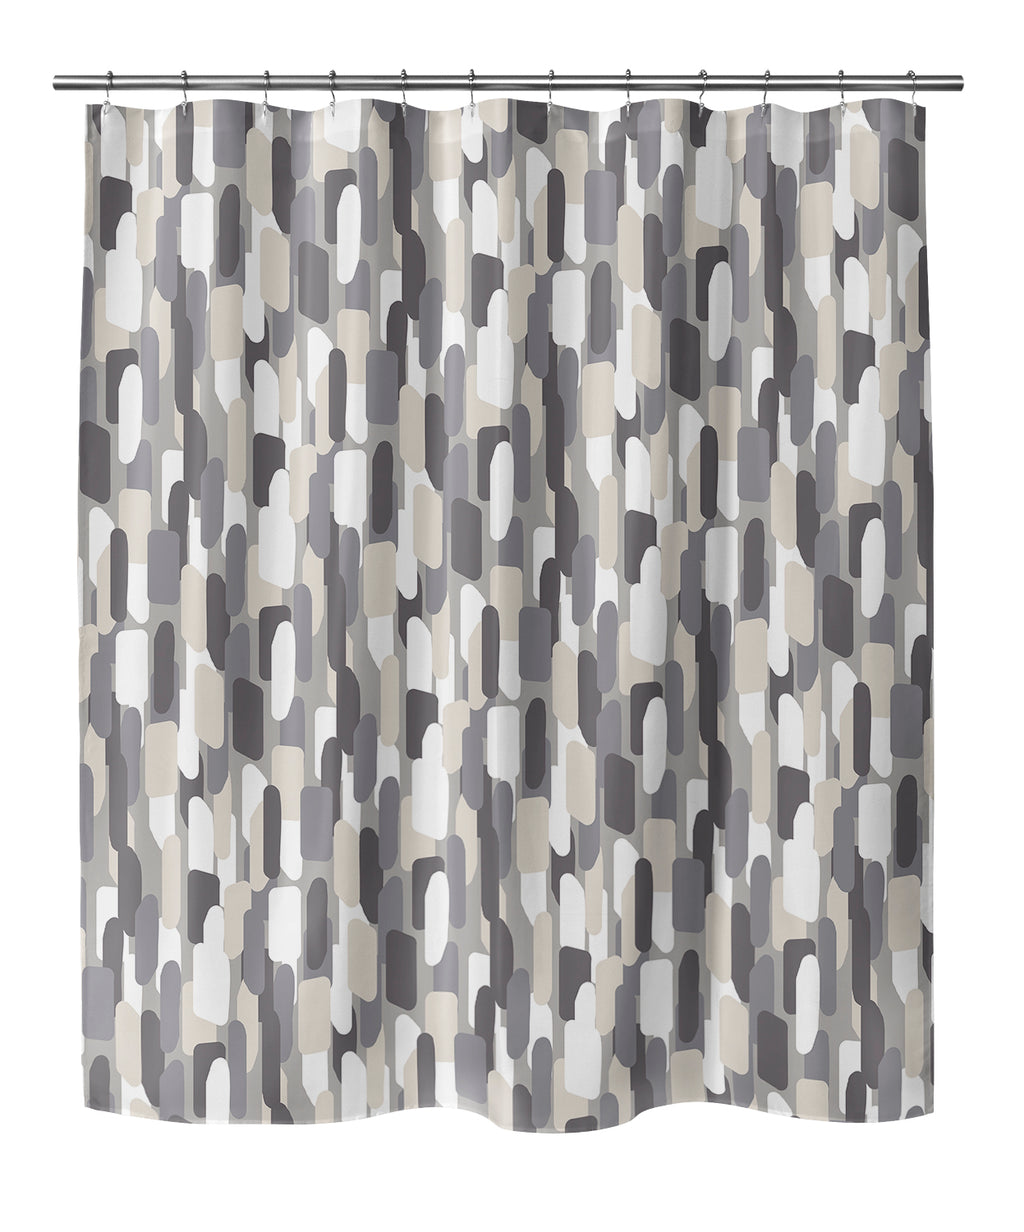 NEVALI V LIGHT GRAY Shower Curtain By Marina Gutierrez